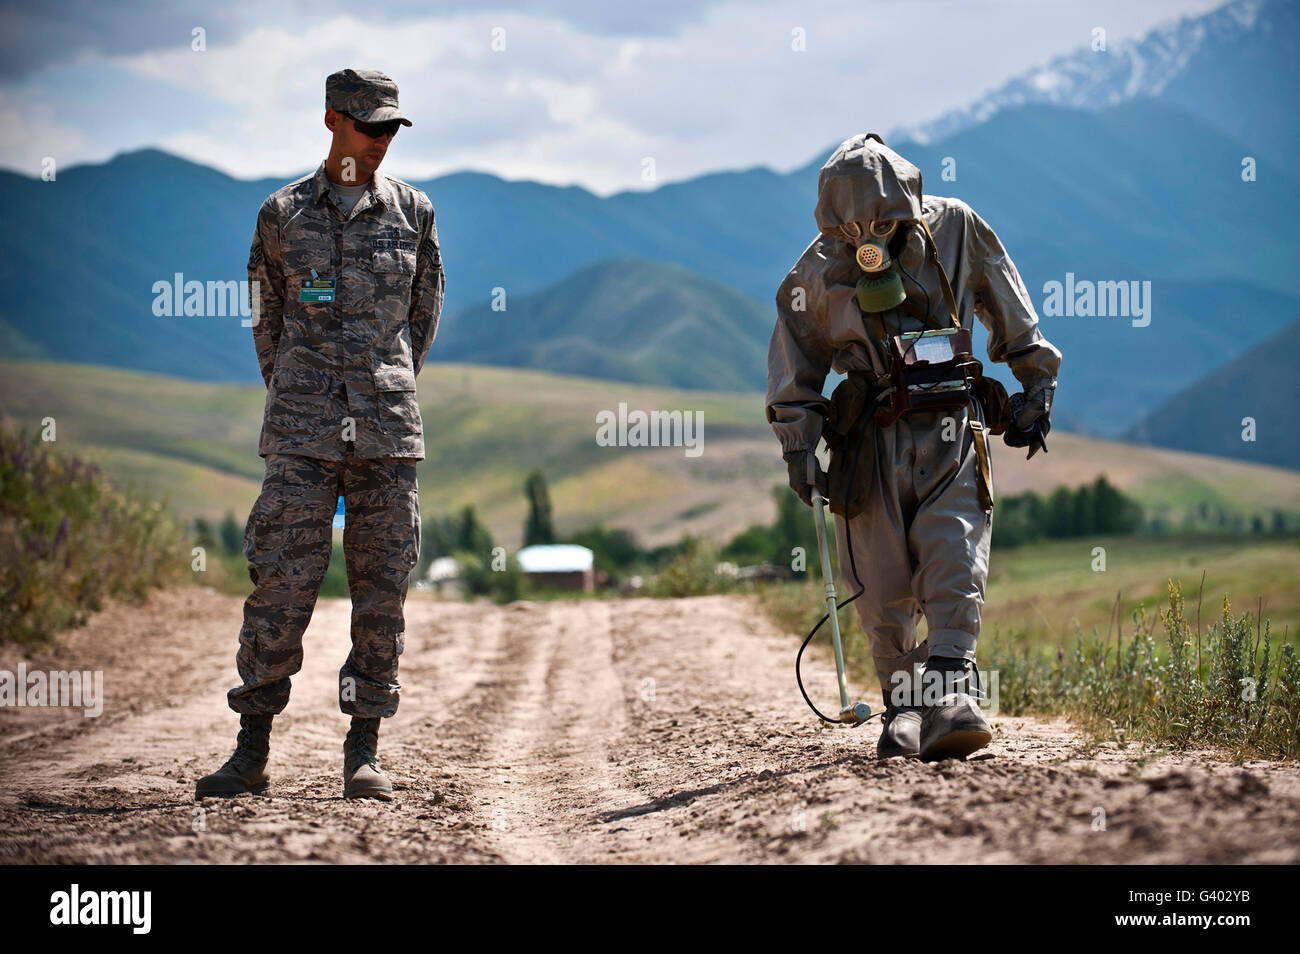 Member of the Kyrgyz Republic searches for contaminated material. - Stock Image